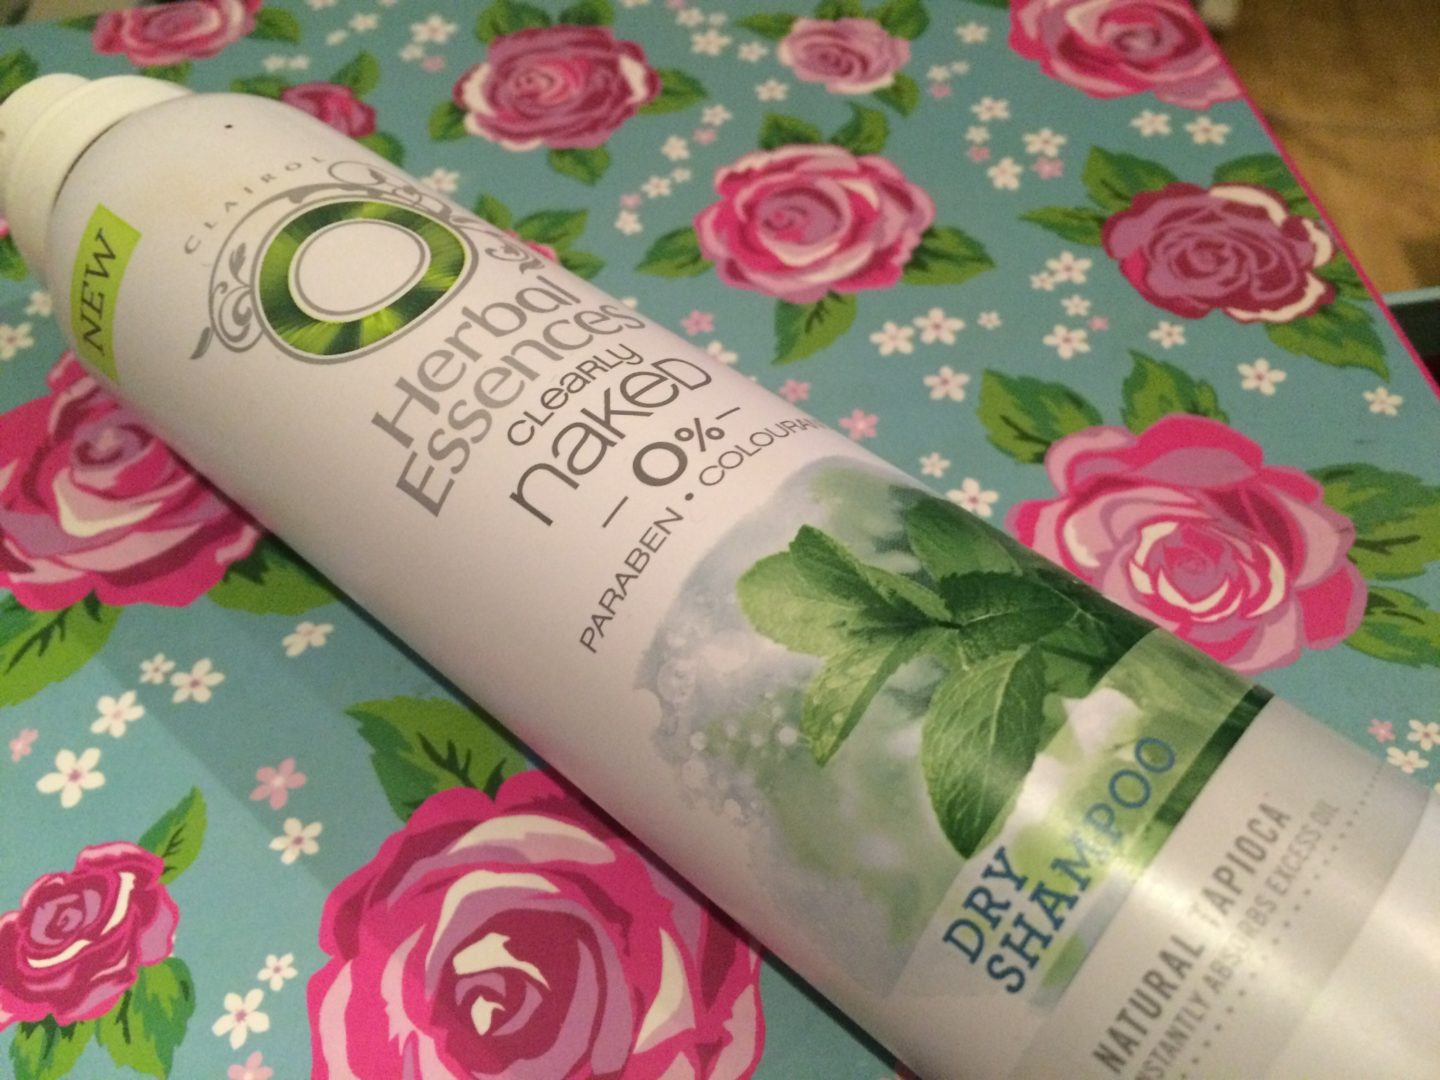 Herbal Essences Naked Dry Shampoo Review